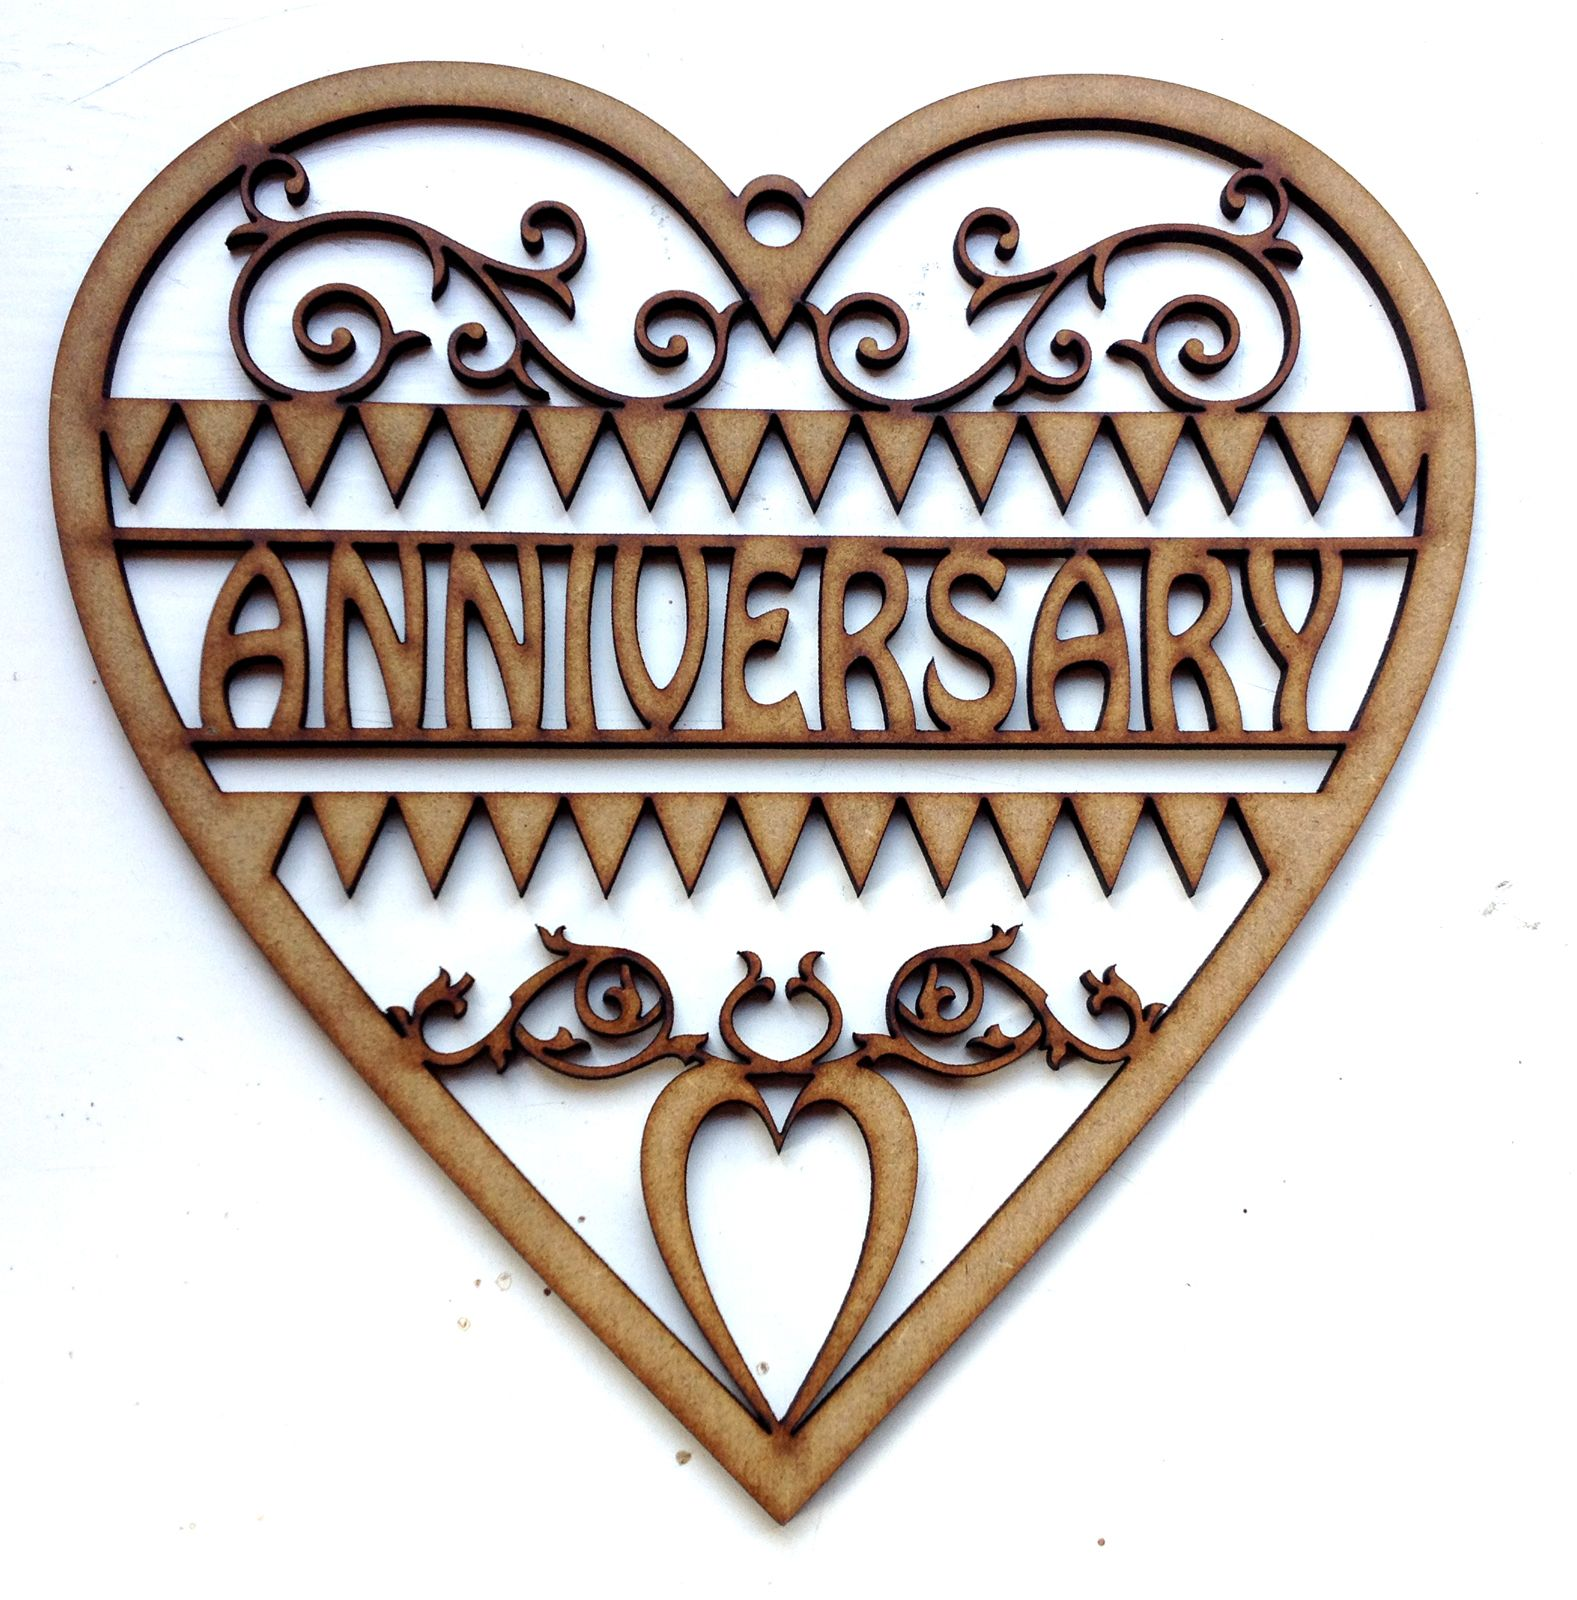 A lovely gift idea for any anniversary